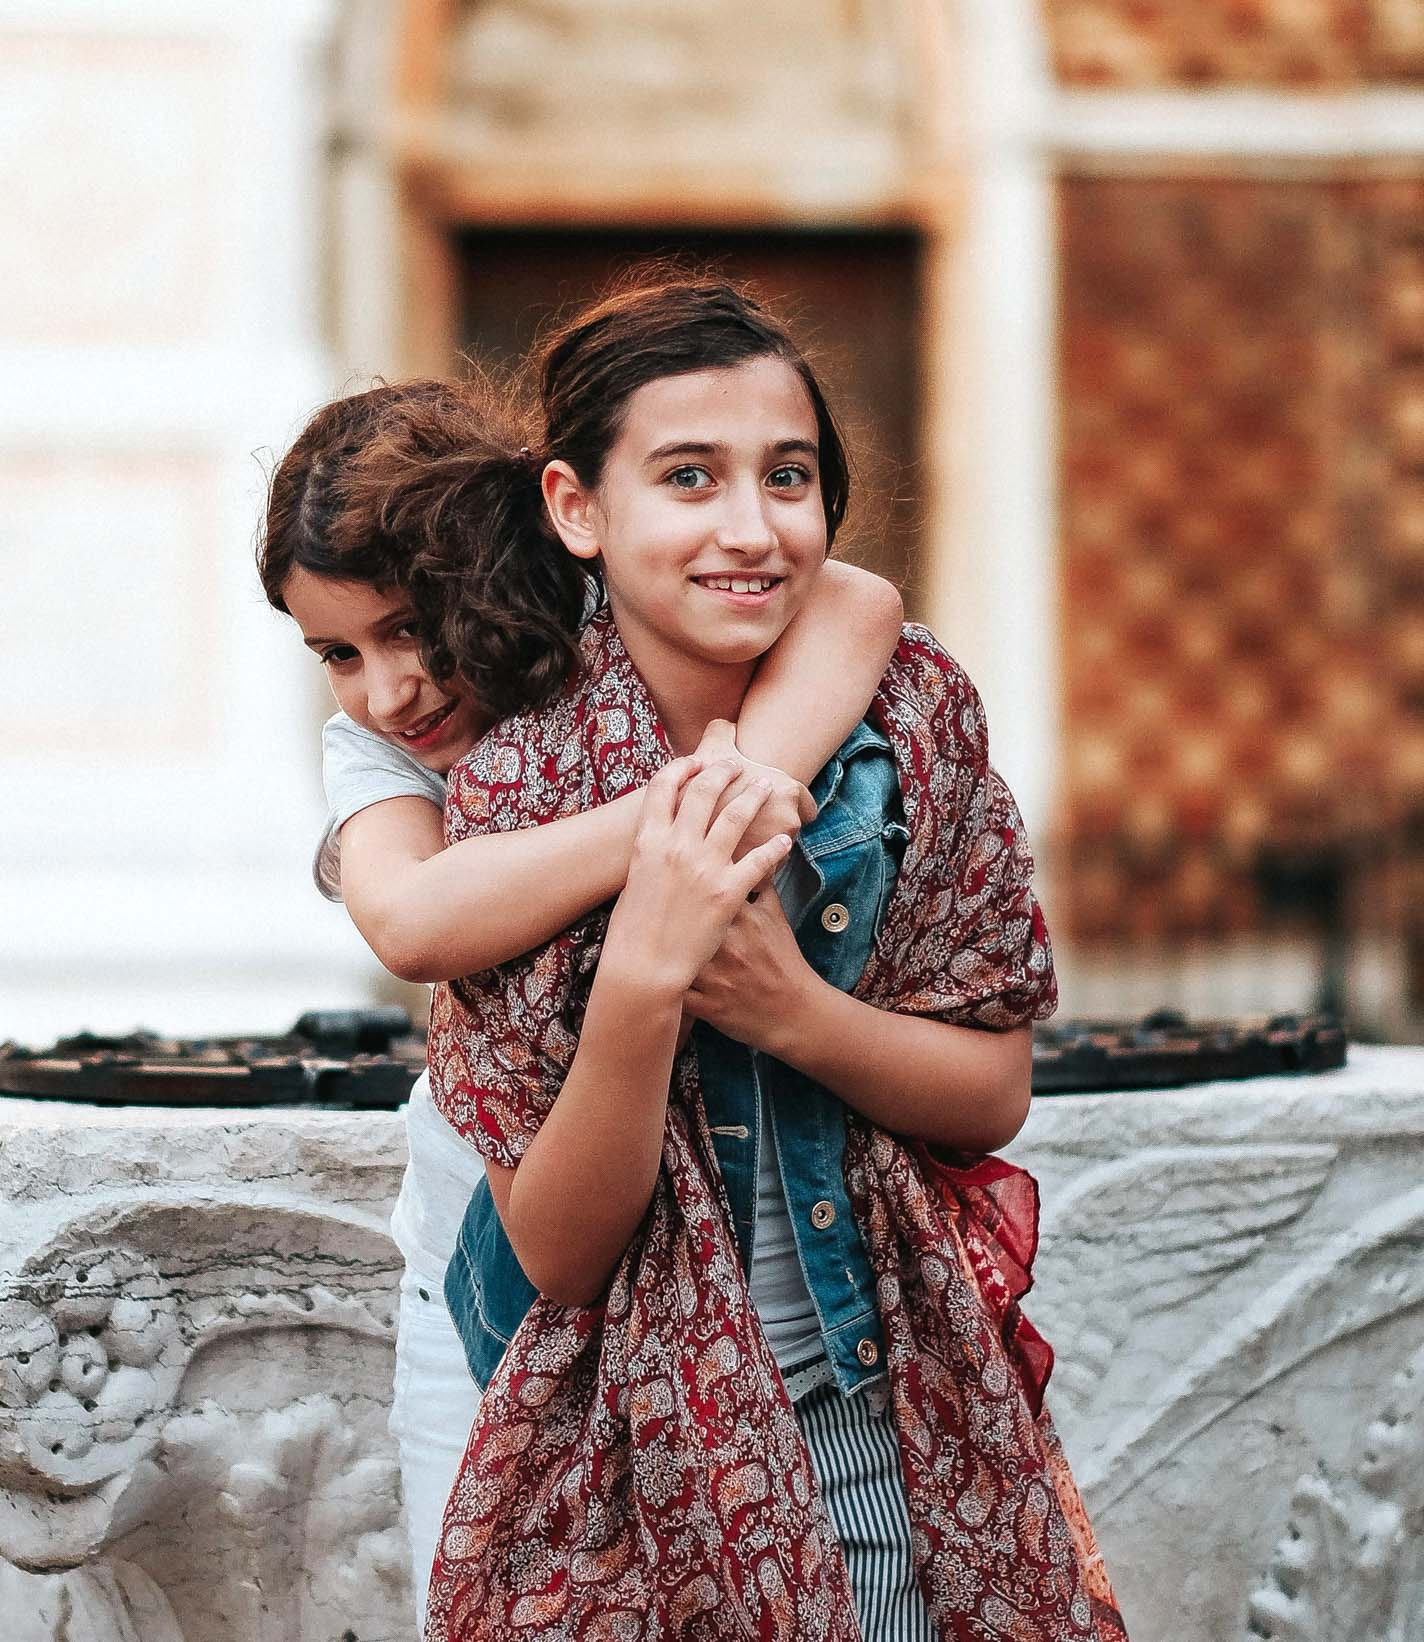 Two girls hugging in Morocco